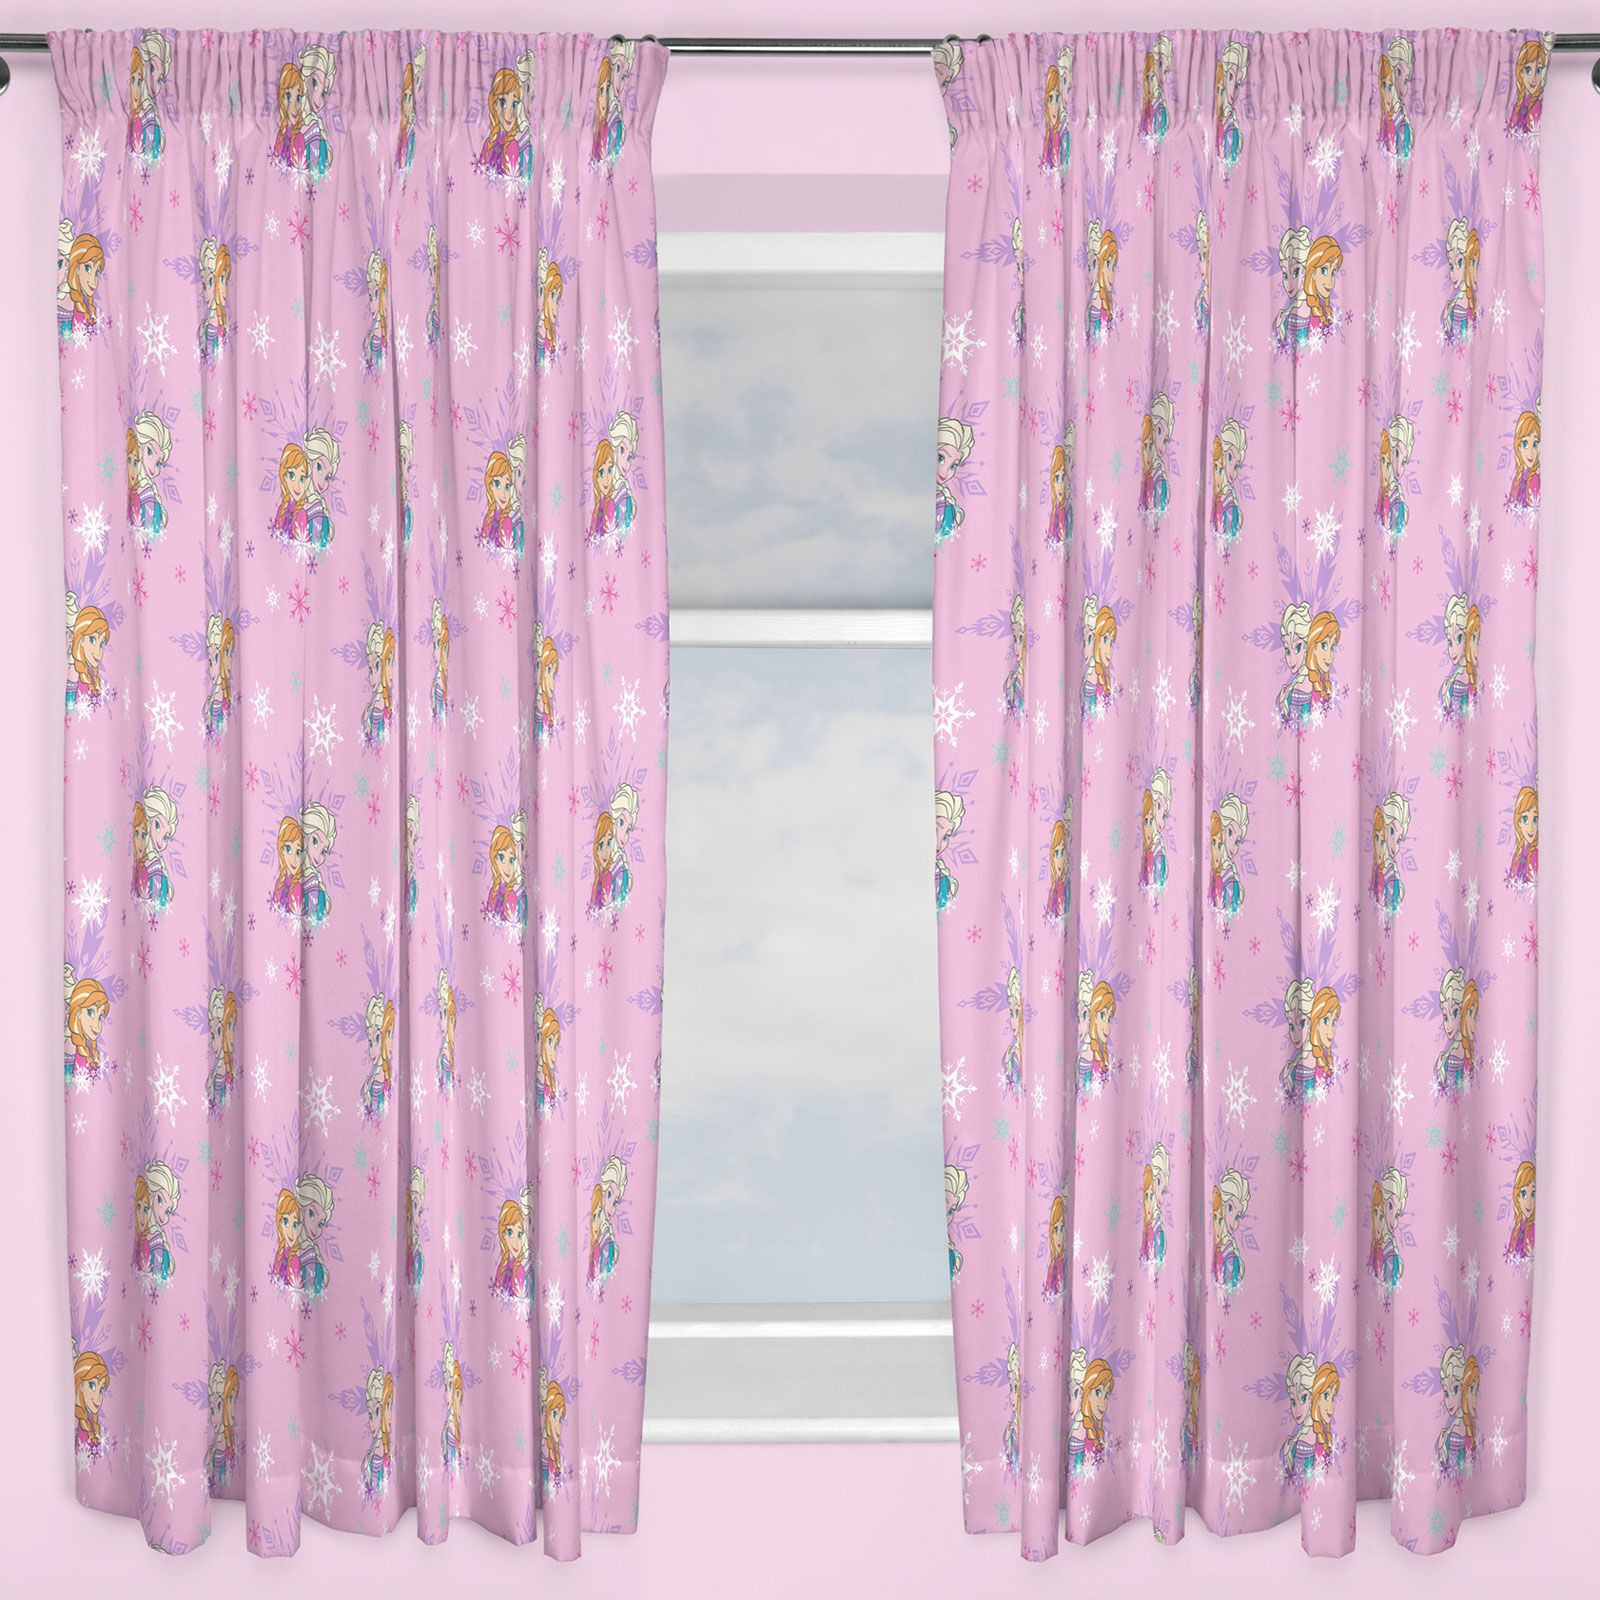 KIDS DISNEY AND CHARACTER CURTAINS 54 72 INCH